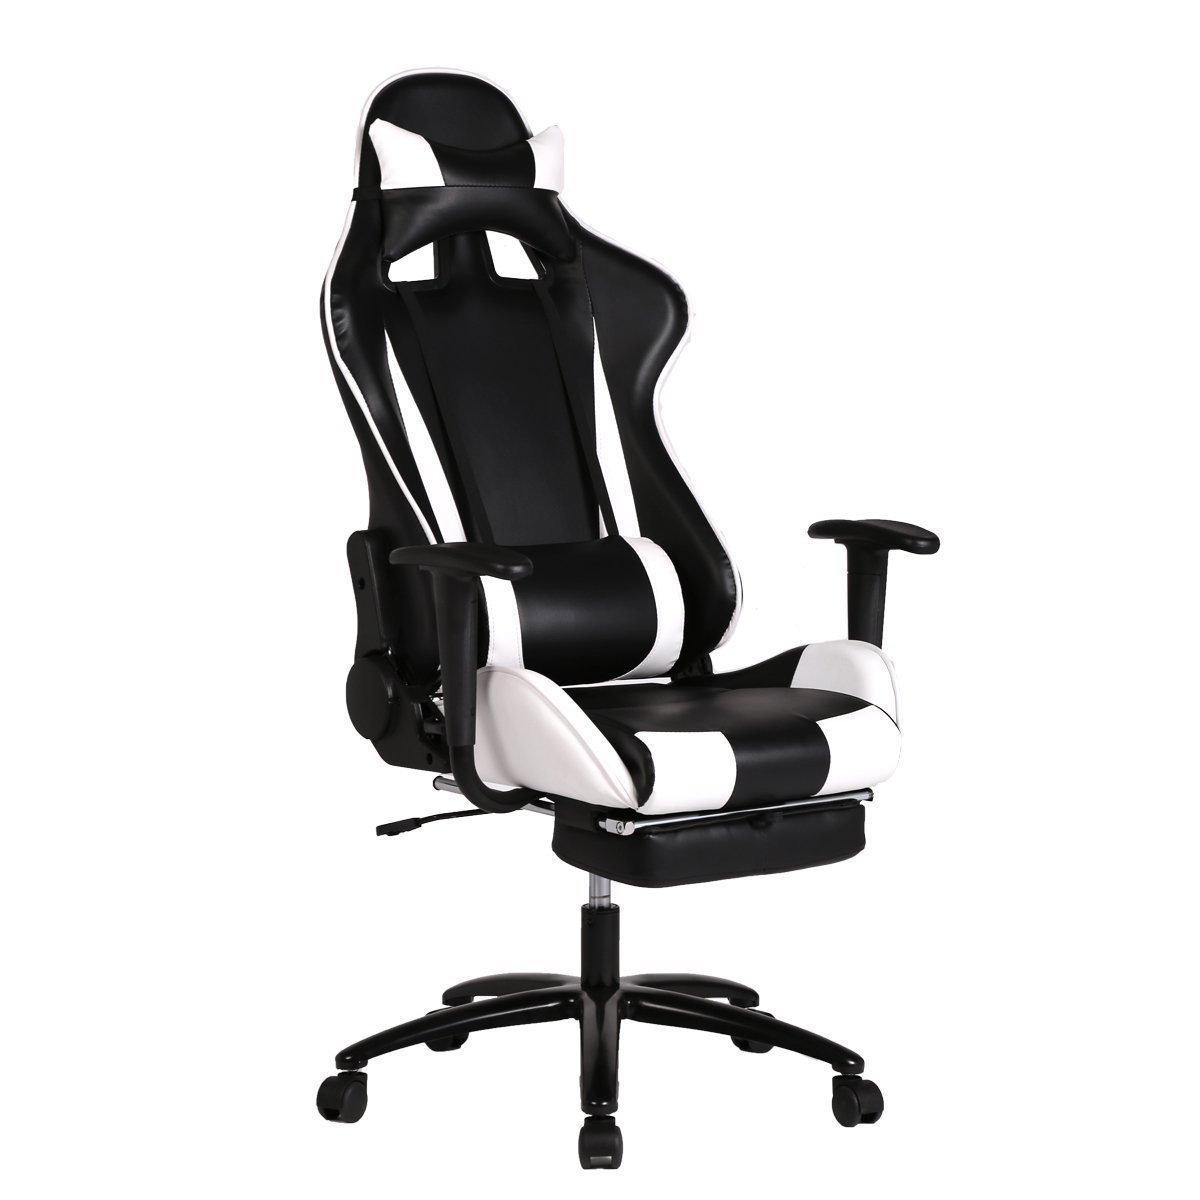 10 Cheap Gaming Chairs  Under 100  Gaming Chair Pro